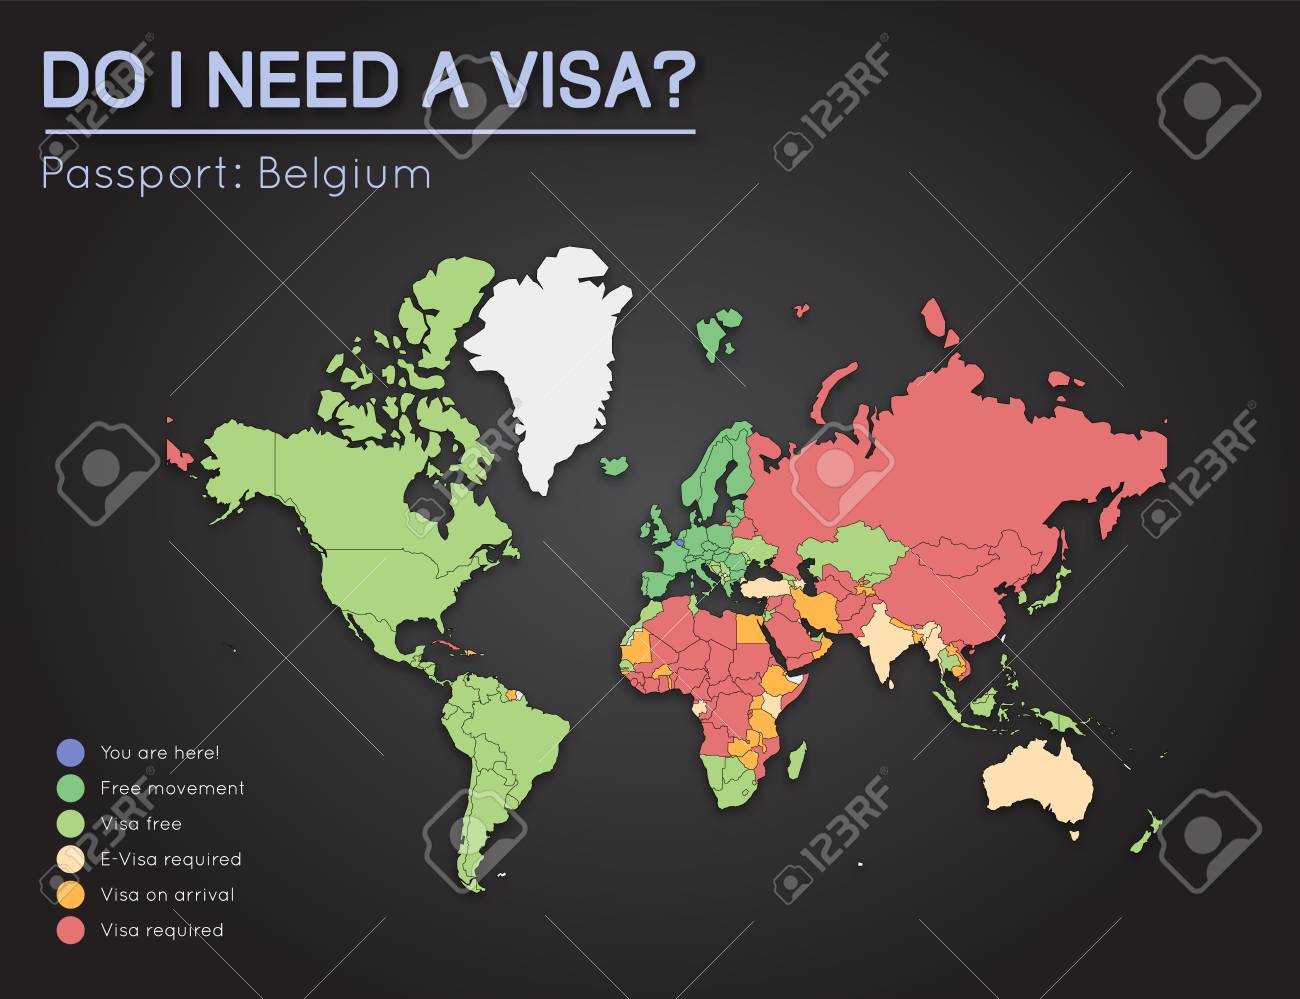 Visas information for kingdom of belgium passport holders year vector visas information for kingdom of belgium passport holders year 2017 world map infographics showing visa requirements for all countries gumiabroncs Gallery